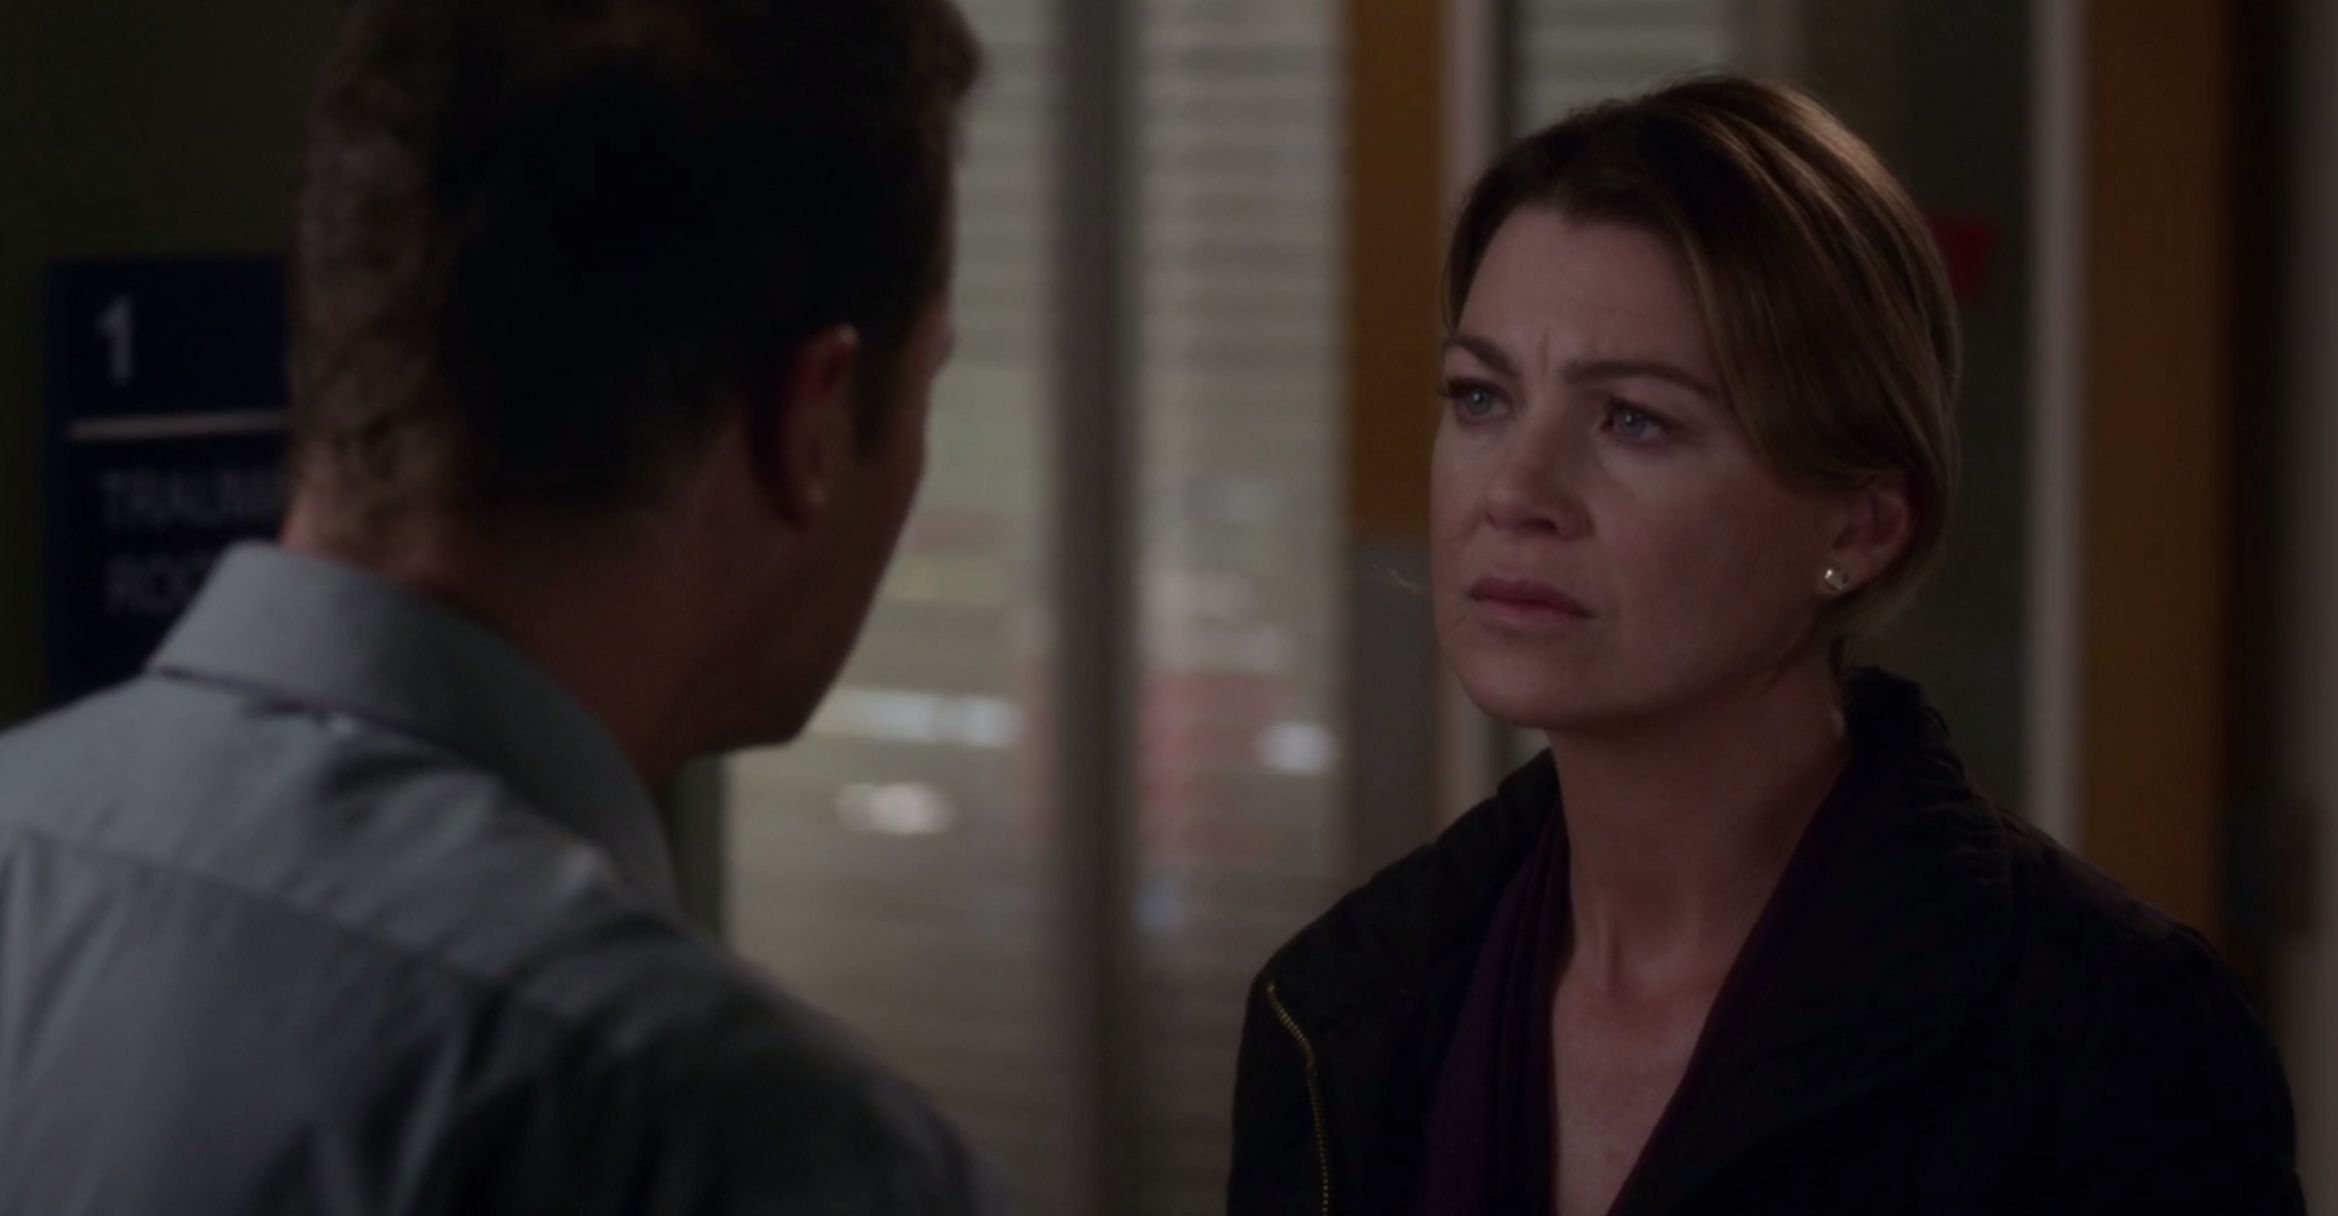 Greys Anatomy Season 13 Episode 2 Live Stream Watch Online